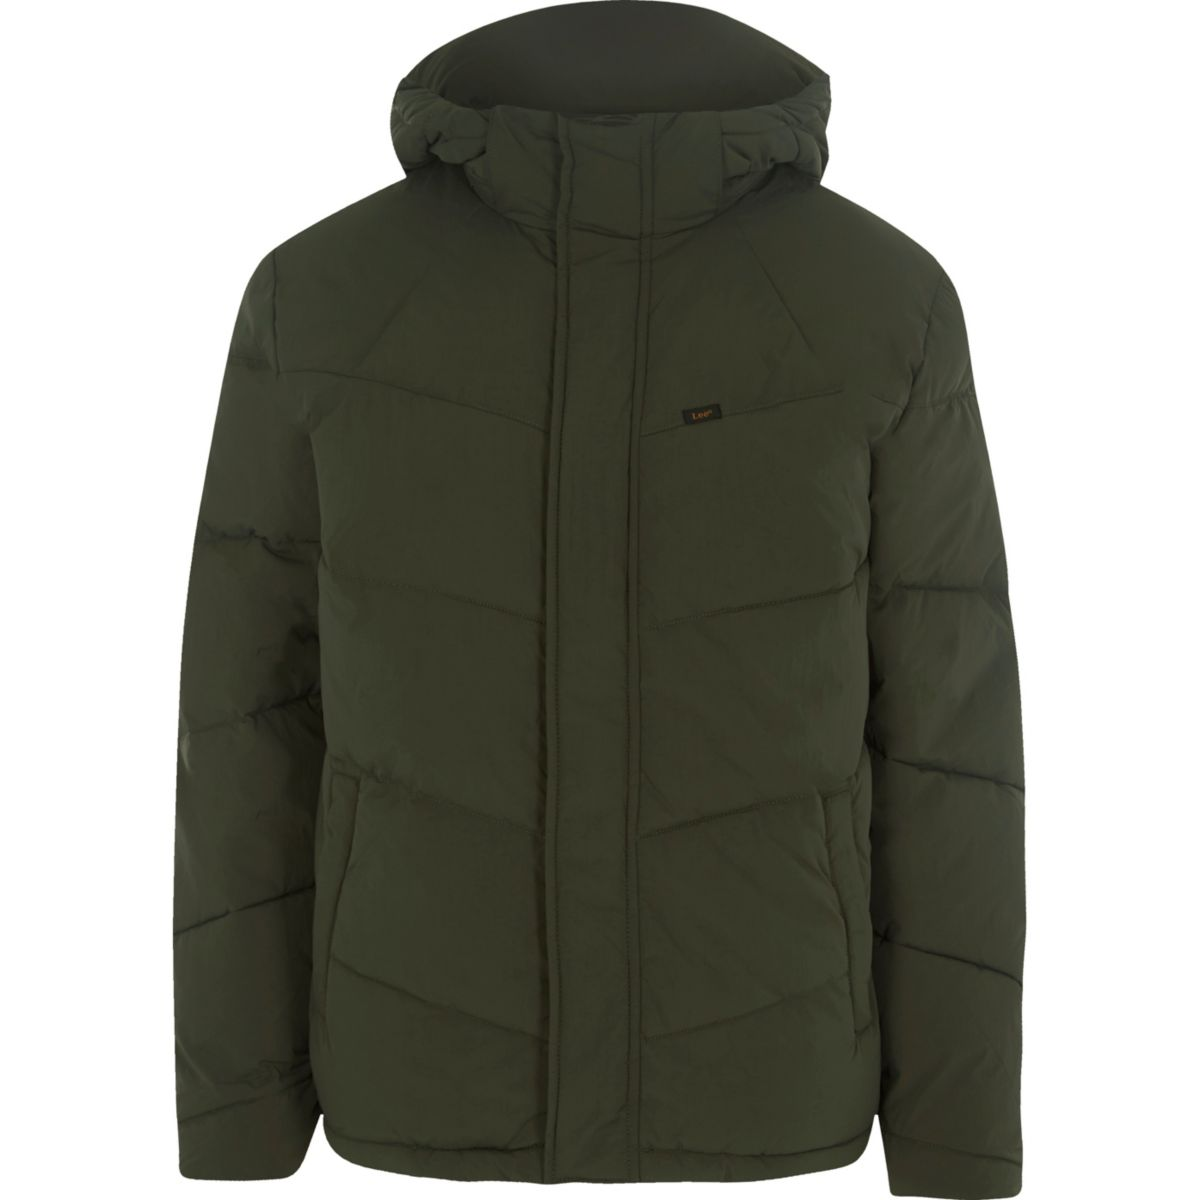 Lee green hooded puffer jacket